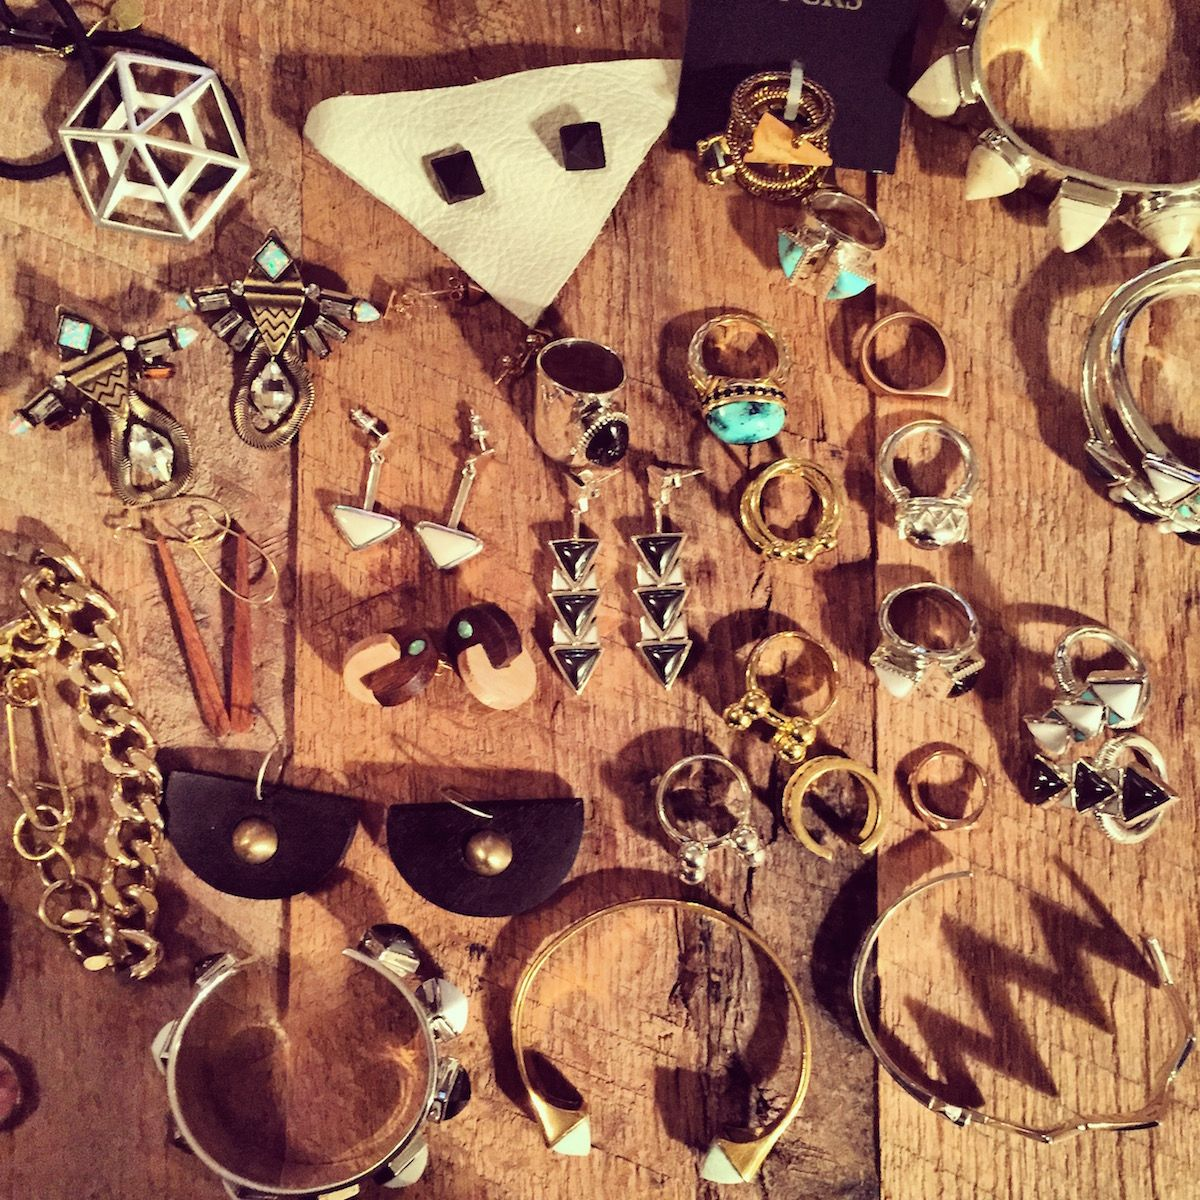 #WhitneyPort & her #Coachella collection, feauring our Hexagon pony. #SacredGeometry